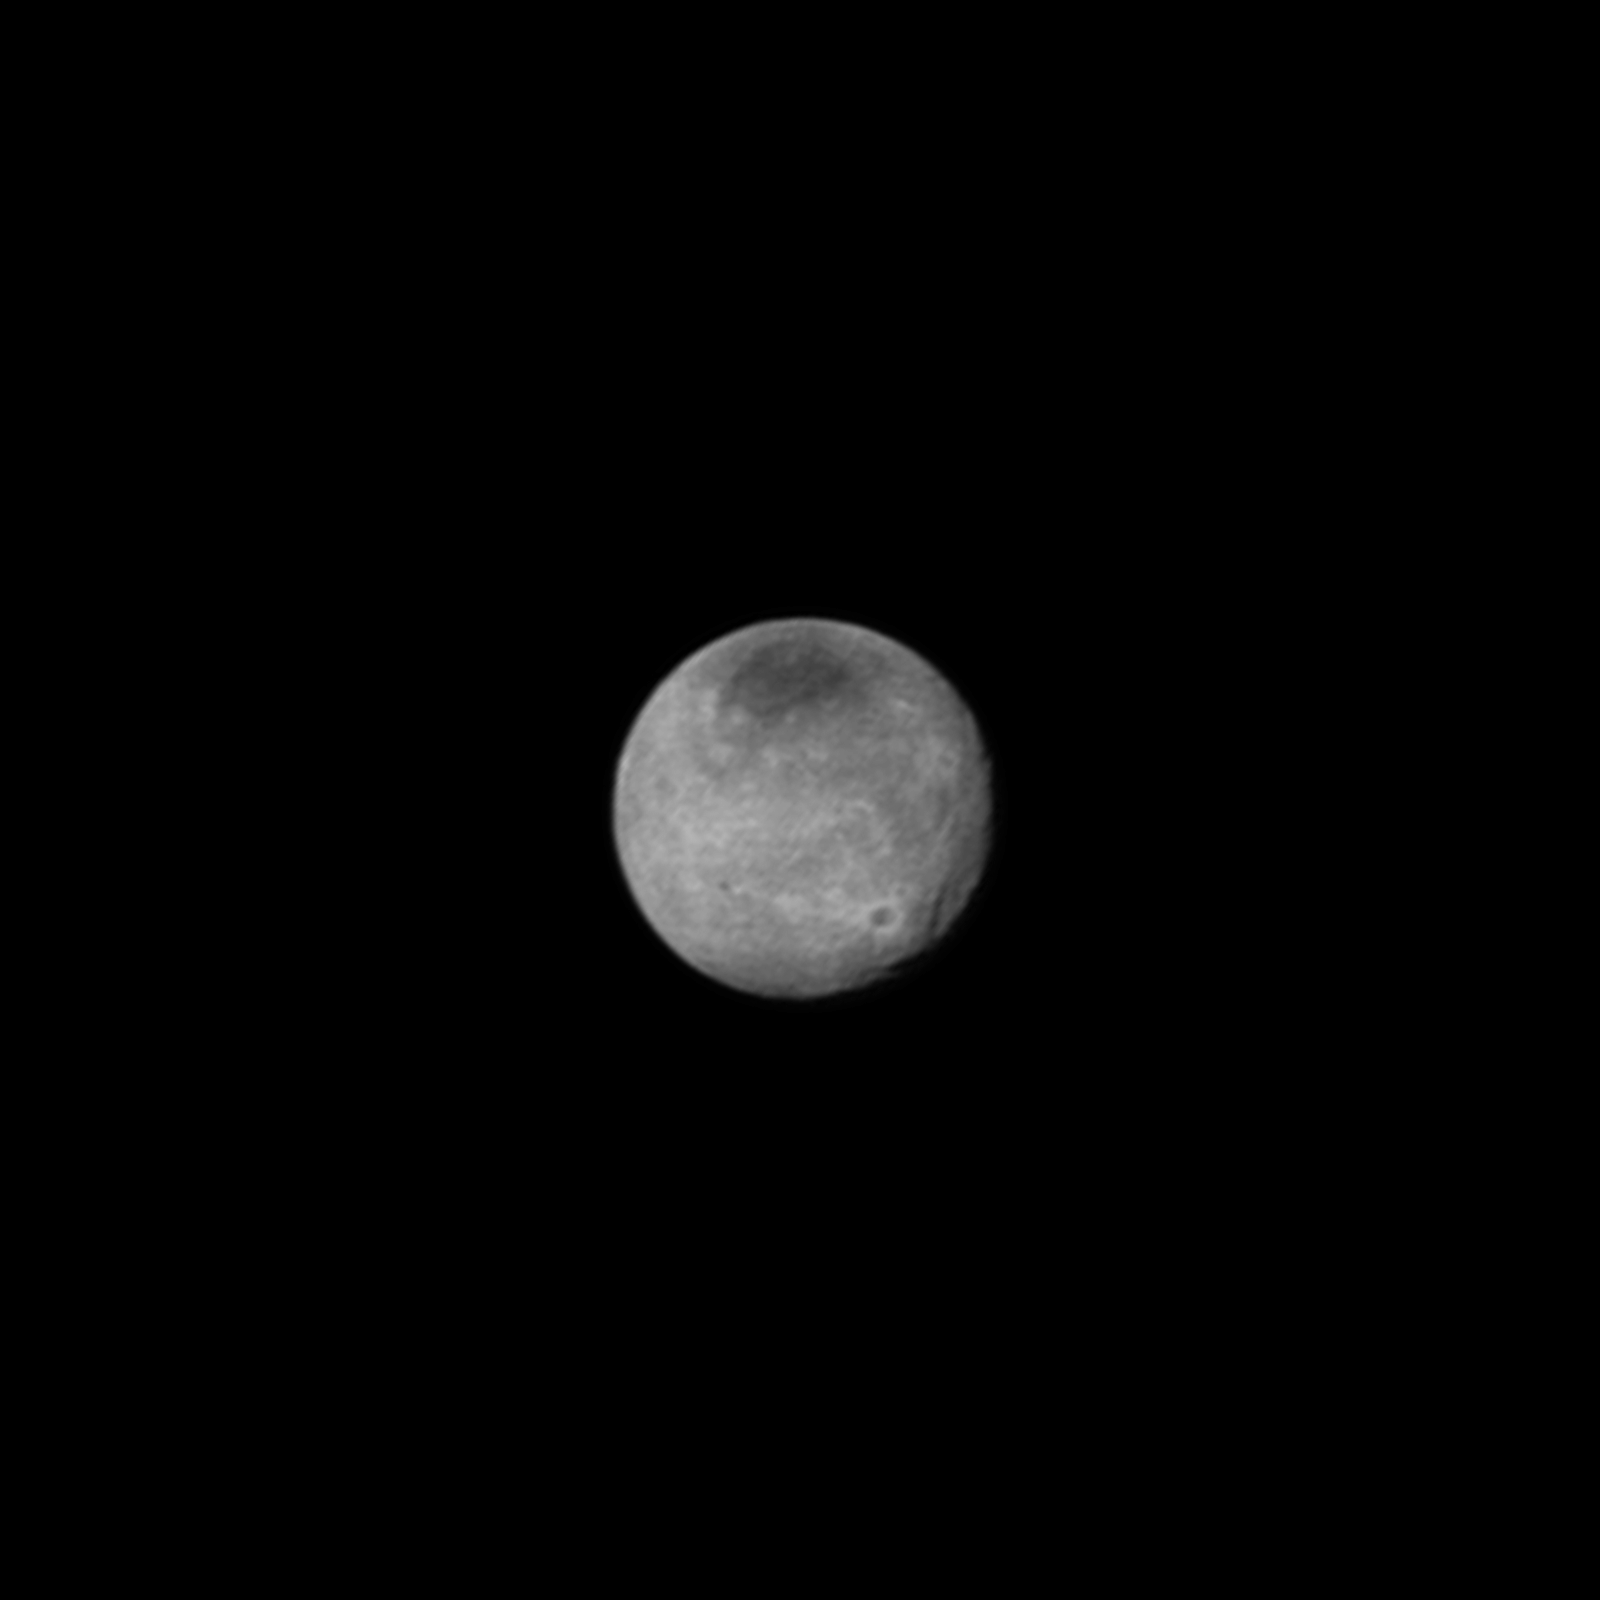 Pluto's moon Charon, seen here in true colour, has a dark, red-tinted feature on its north pole. Credit: NASA/JHUAPL/SWRI